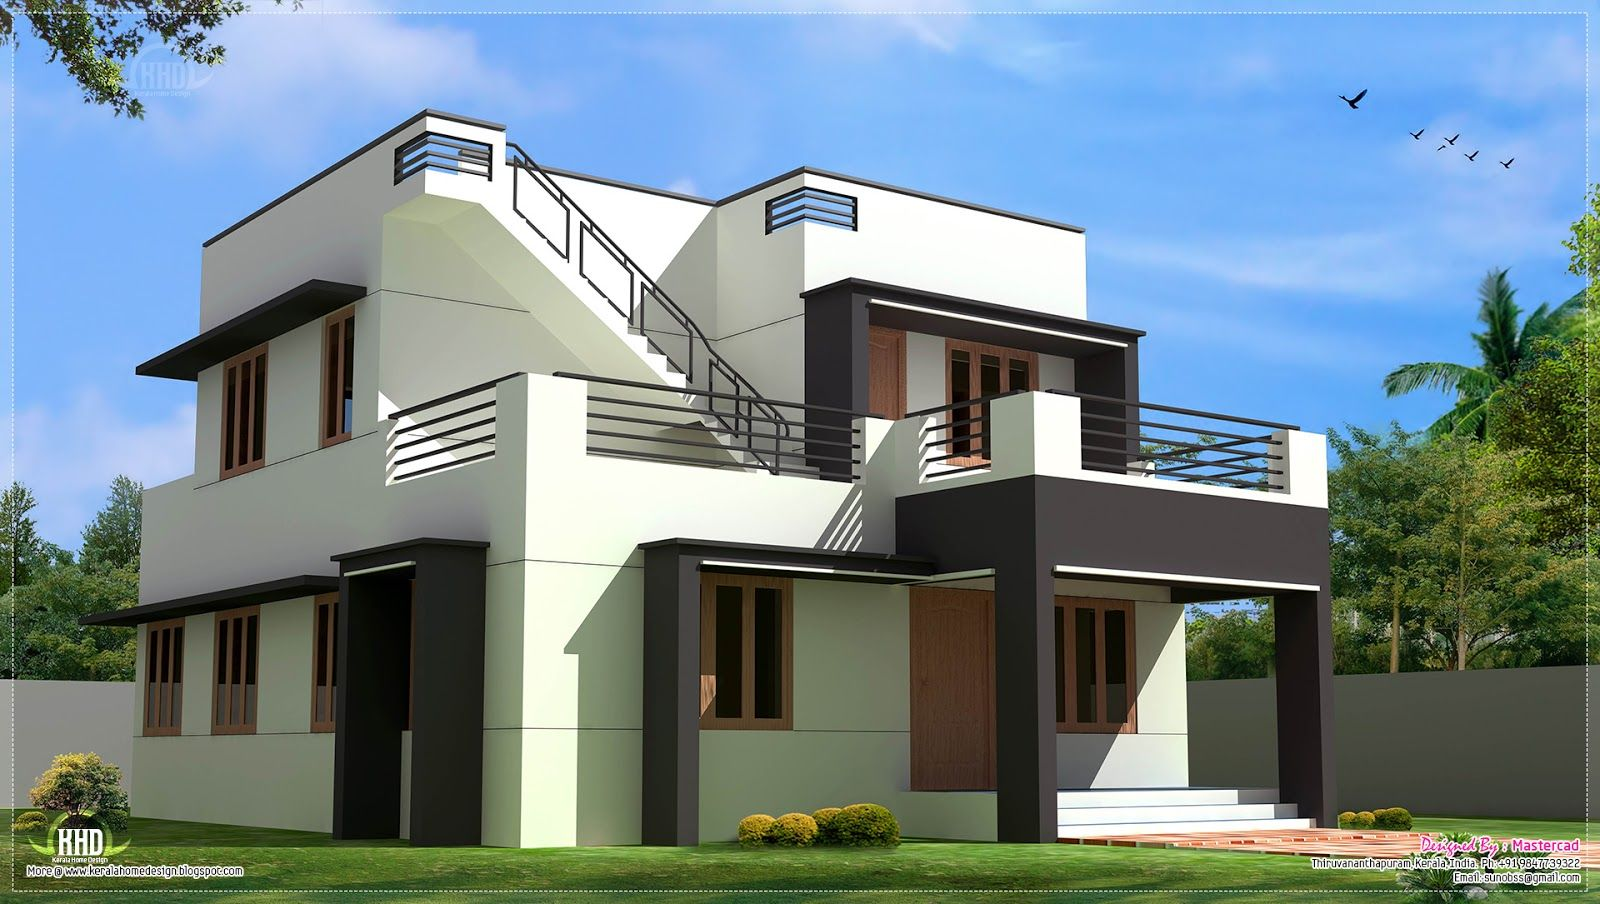 Modern home design pertaining to 28 awesome modern house designs